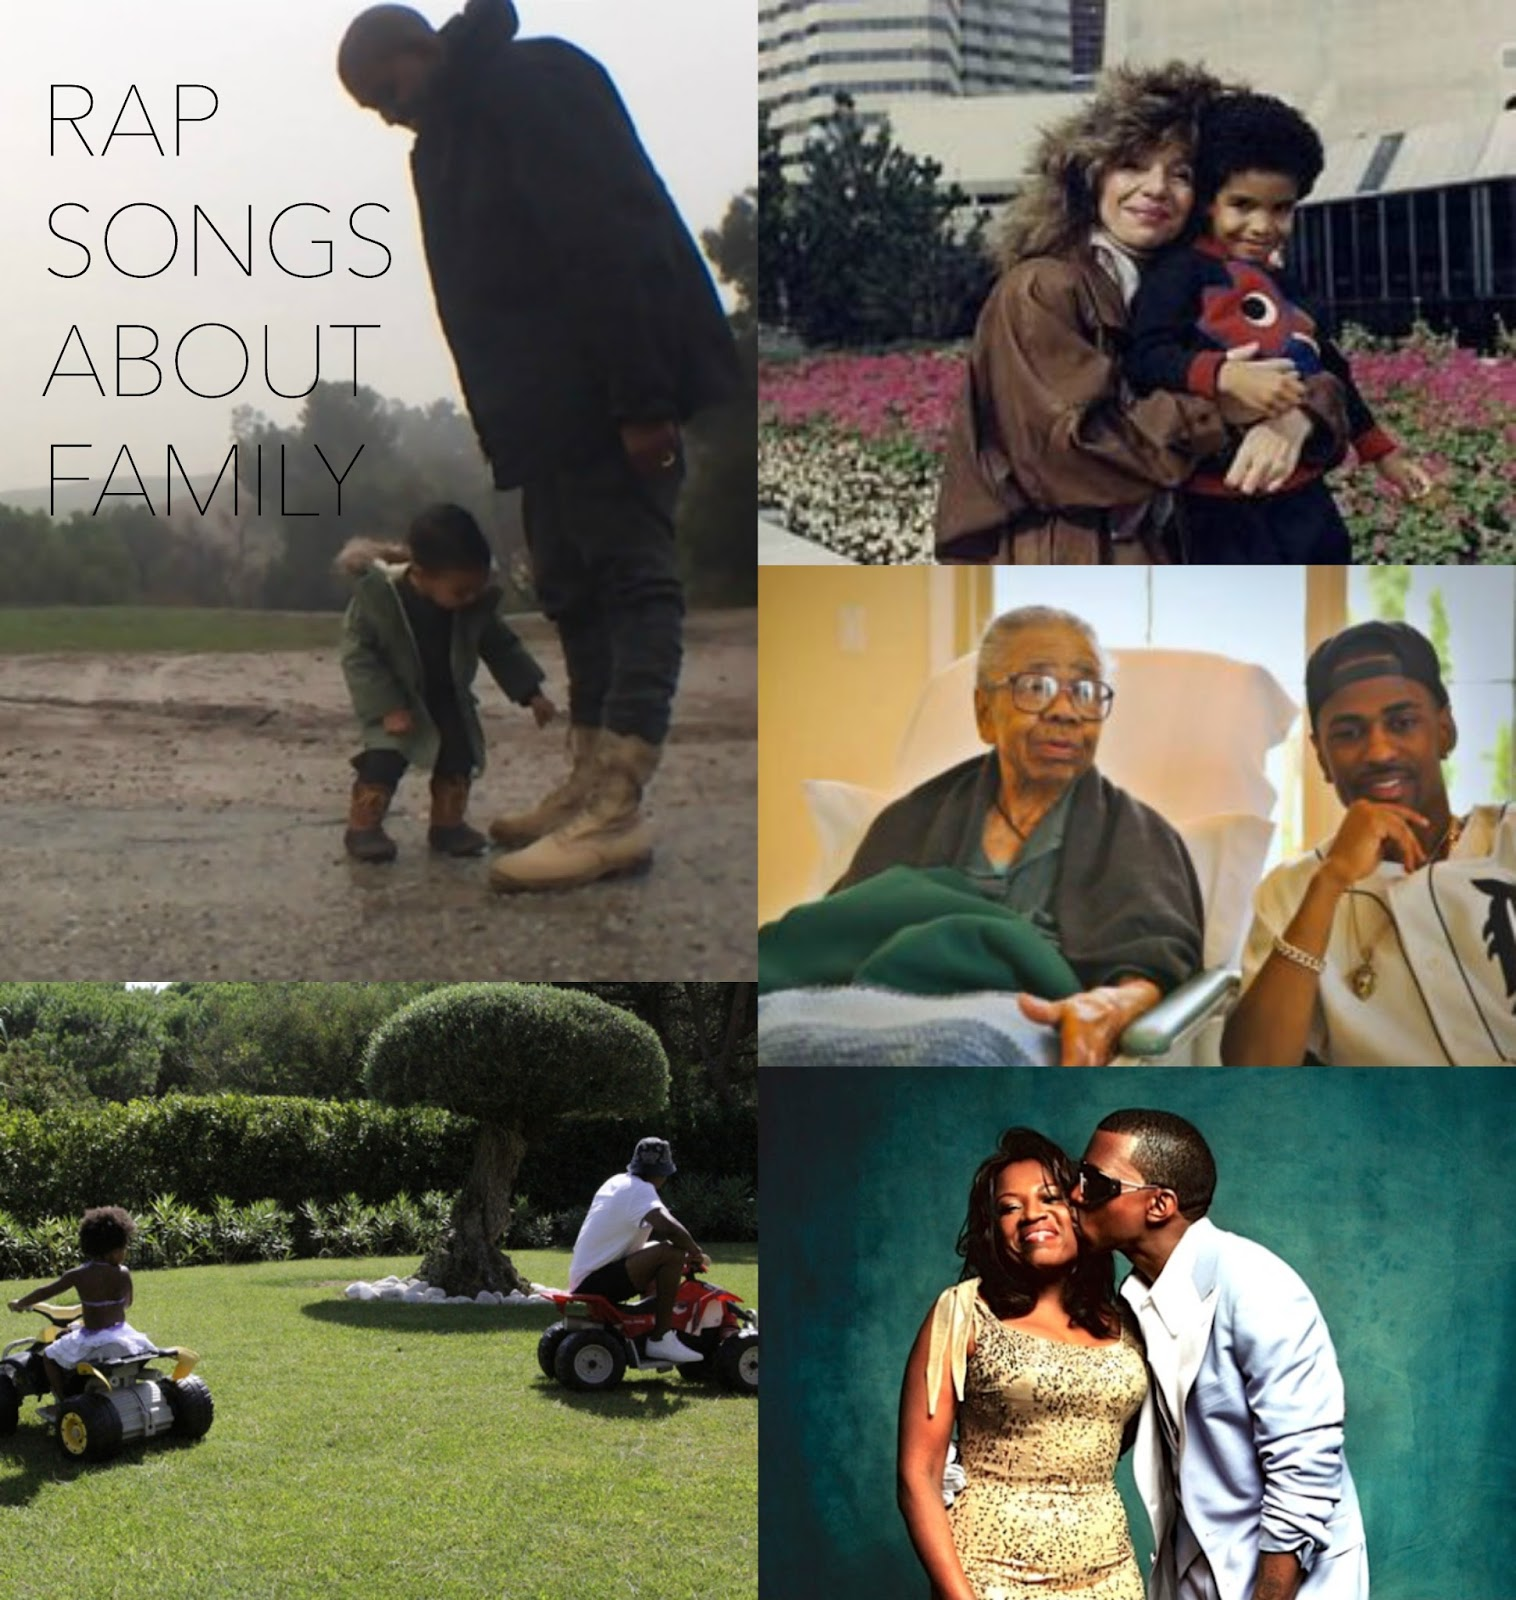 My Favorite Hip-Hop Family Songs - Family Love In My City